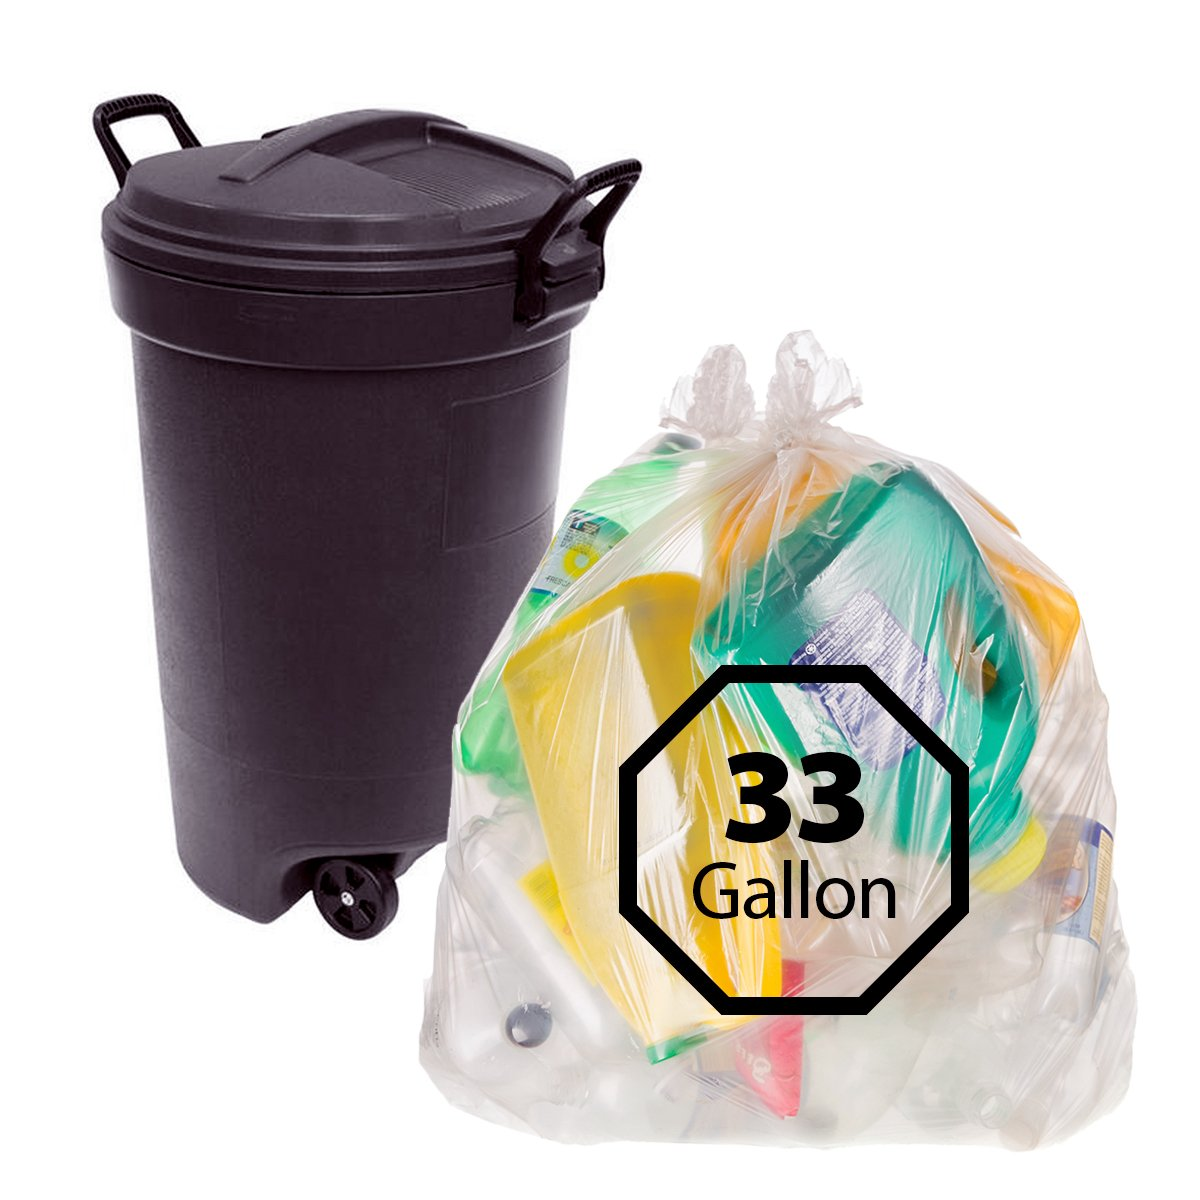 Primode 33 Gallon Recycling Trash Bags - 100 Count By Primode Heavy Duty Clear Garbage Bags For Indoor Or Outdoor Use 33x39 MADE IN THE USA